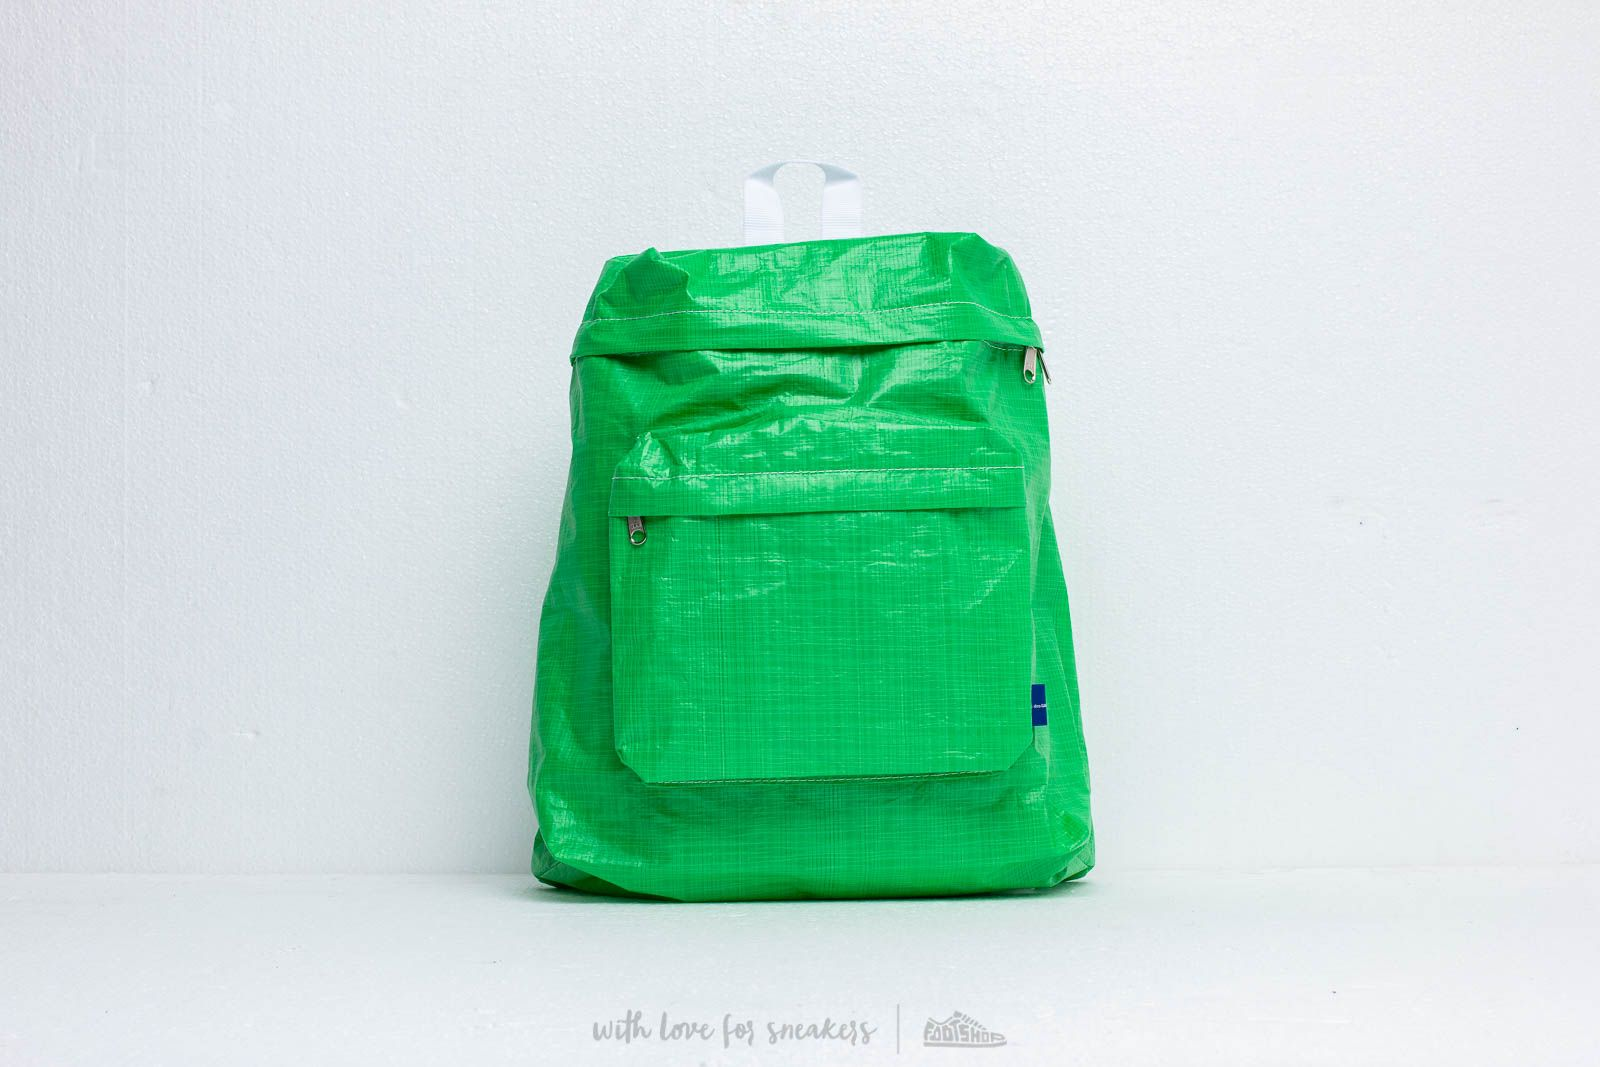 Bags and backpacks Comme des Garçons Shirt S27611 Green